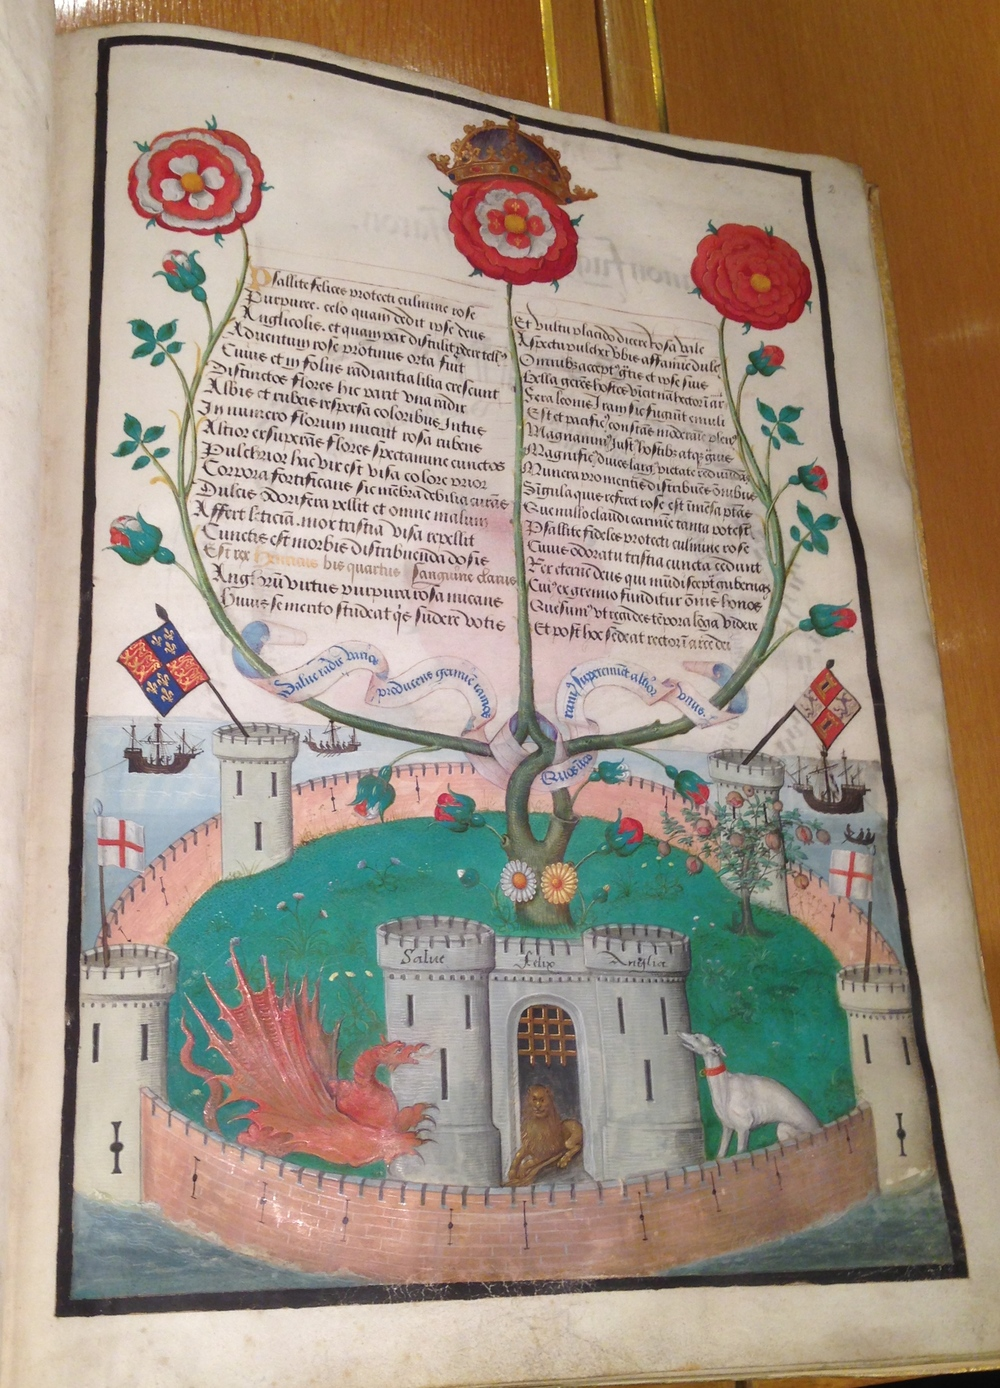 A page full of Tudor symbolism, can you work out what everything represents?